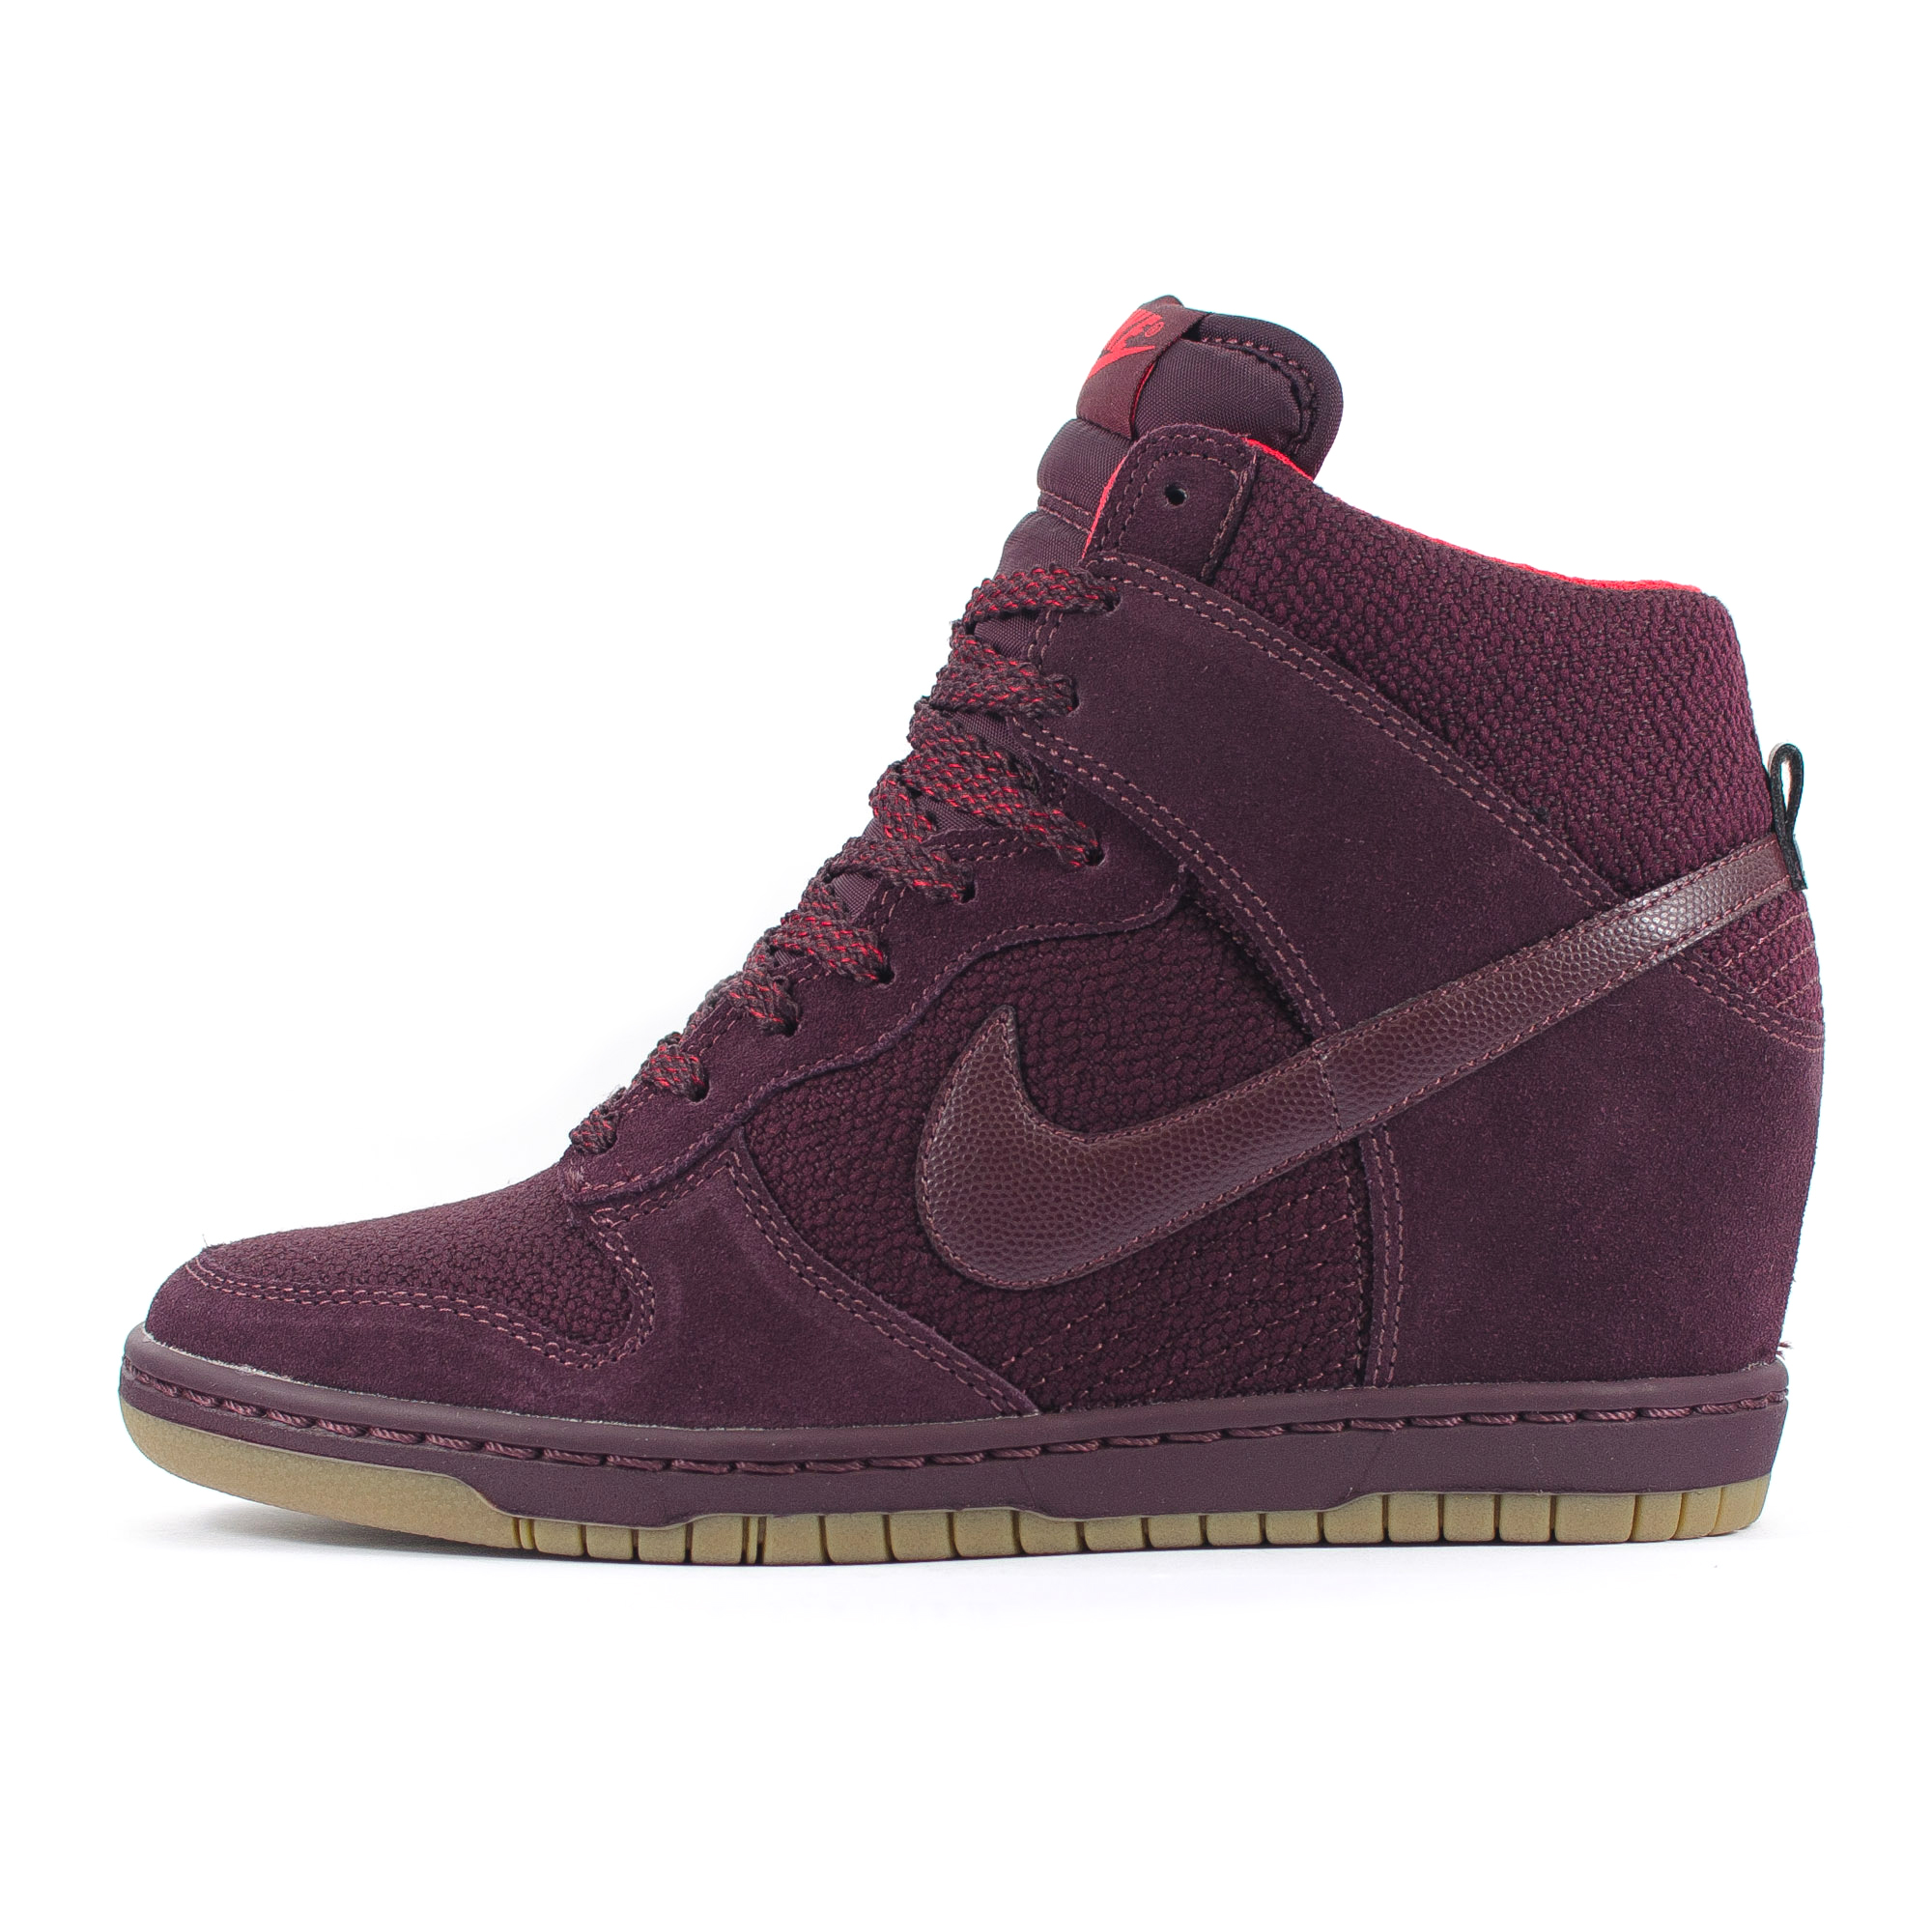 Nike Dunk Wedge Heel Sneakers | Provincial Archives of ...